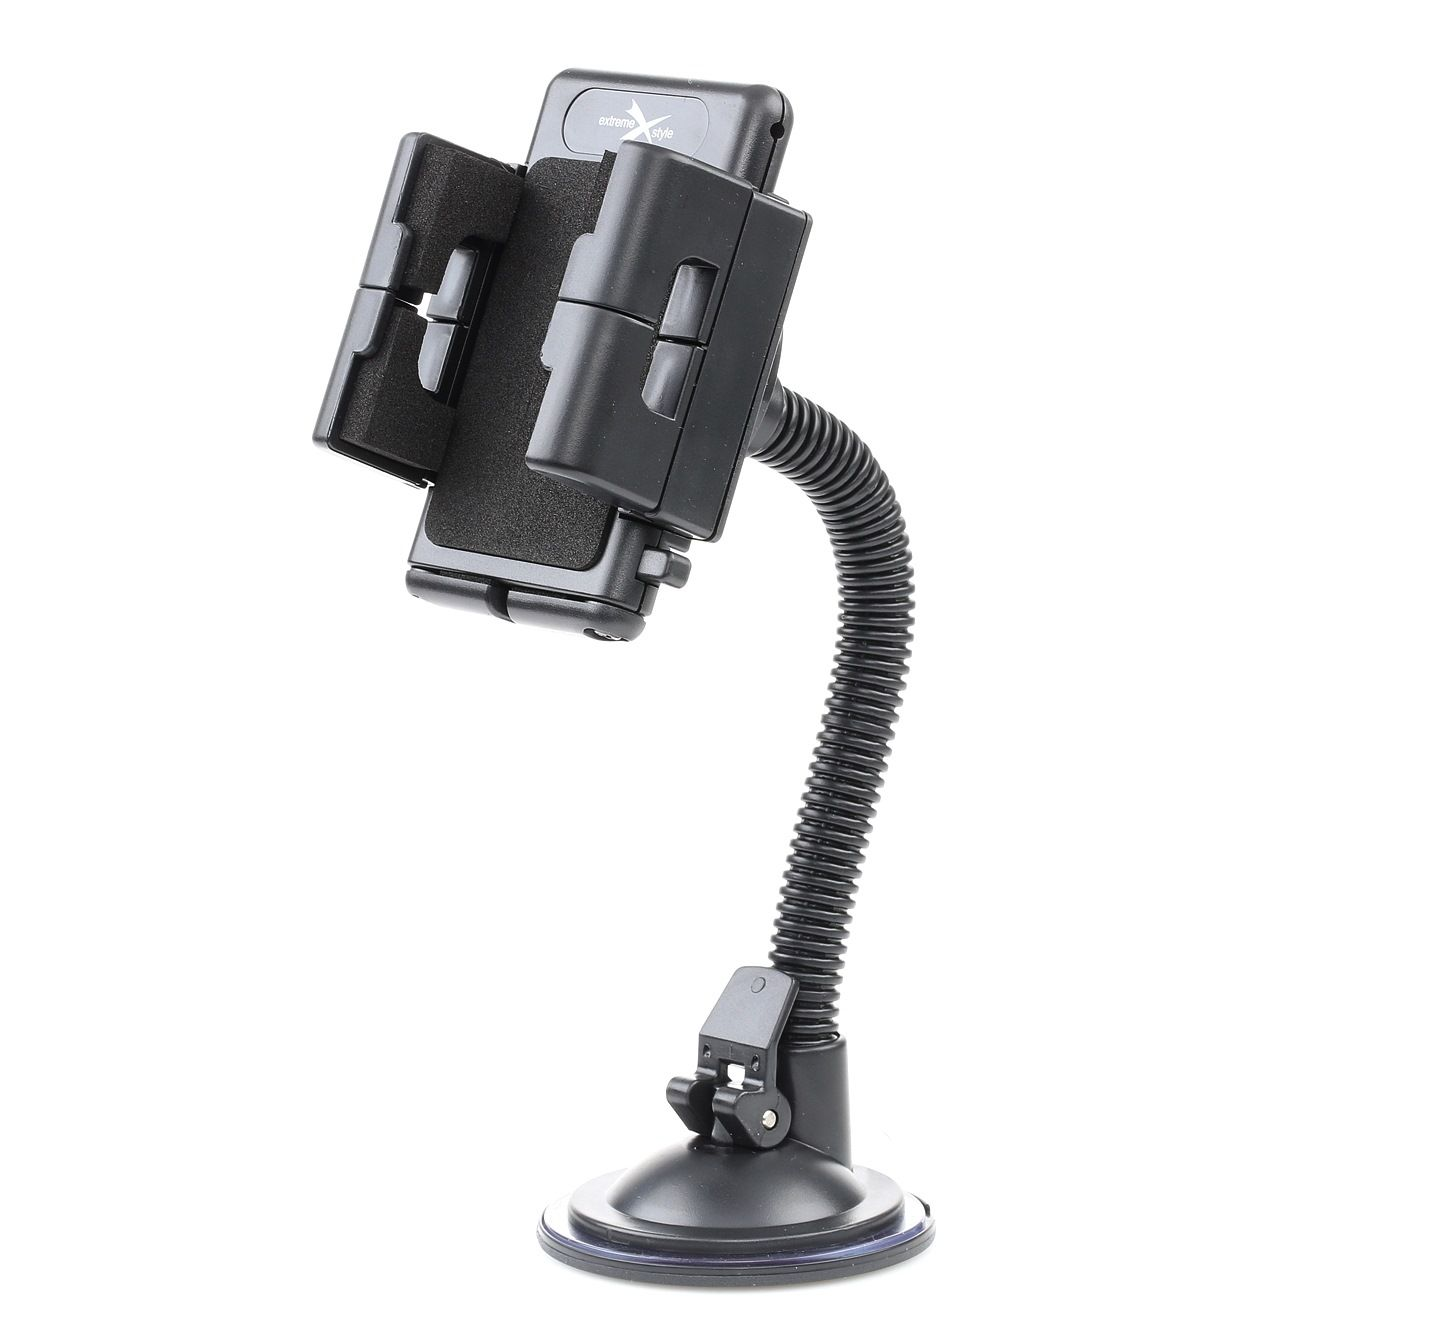 Mobile phone holders EXTREME A158 TYP-B rating